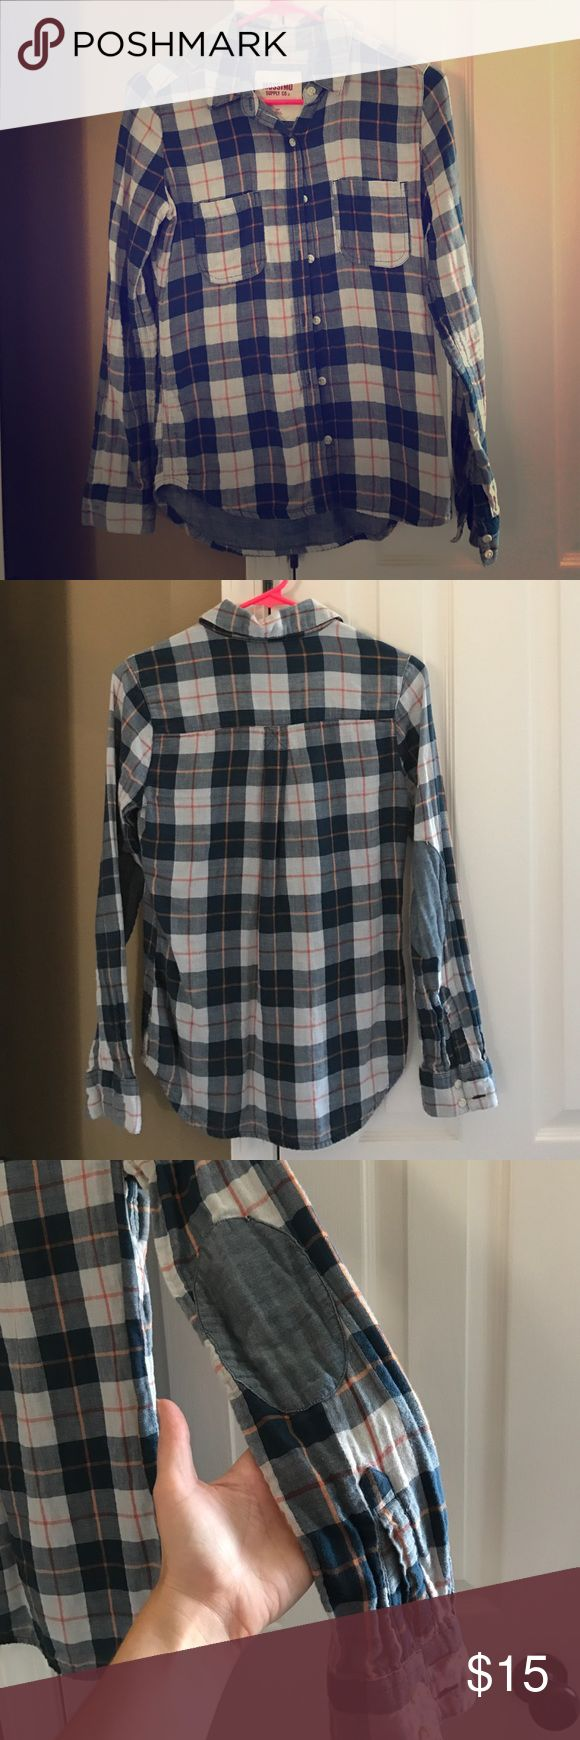 Mossimo button up plaid shirt with elbow patches Mossimo button up plaid shirt with elbow patches. This fun shirt can be worn alone or used to layer. Two tones of blue denim with cream blocks and orange and red plaid. Mossimo Supply Co Tops Button Down Shirts